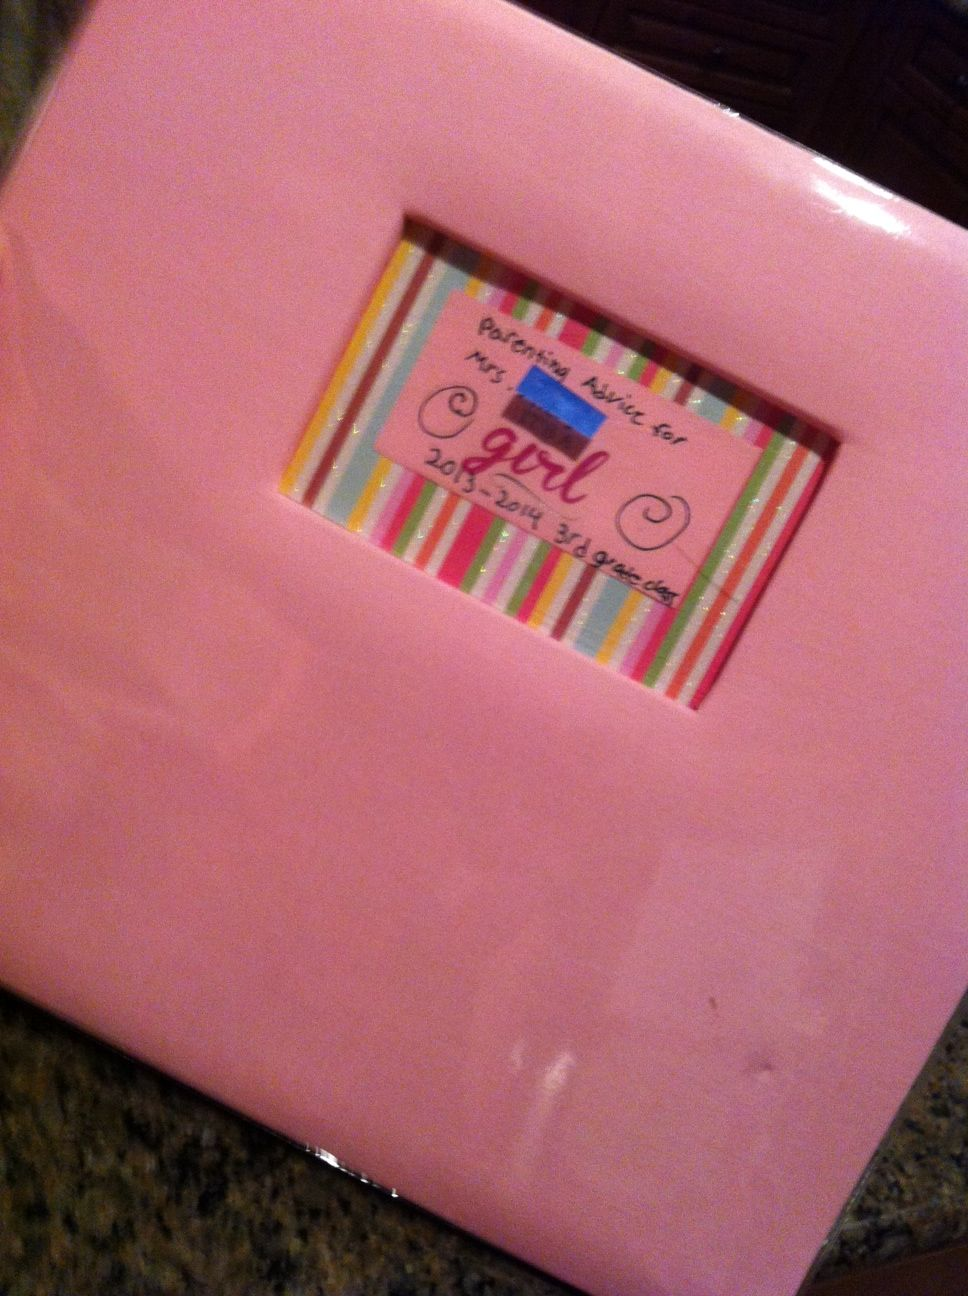 Scrapbook ideas step by step - Baby Shower Learning Exercise To Honor Teacher About To Go On Maternity Leave Step